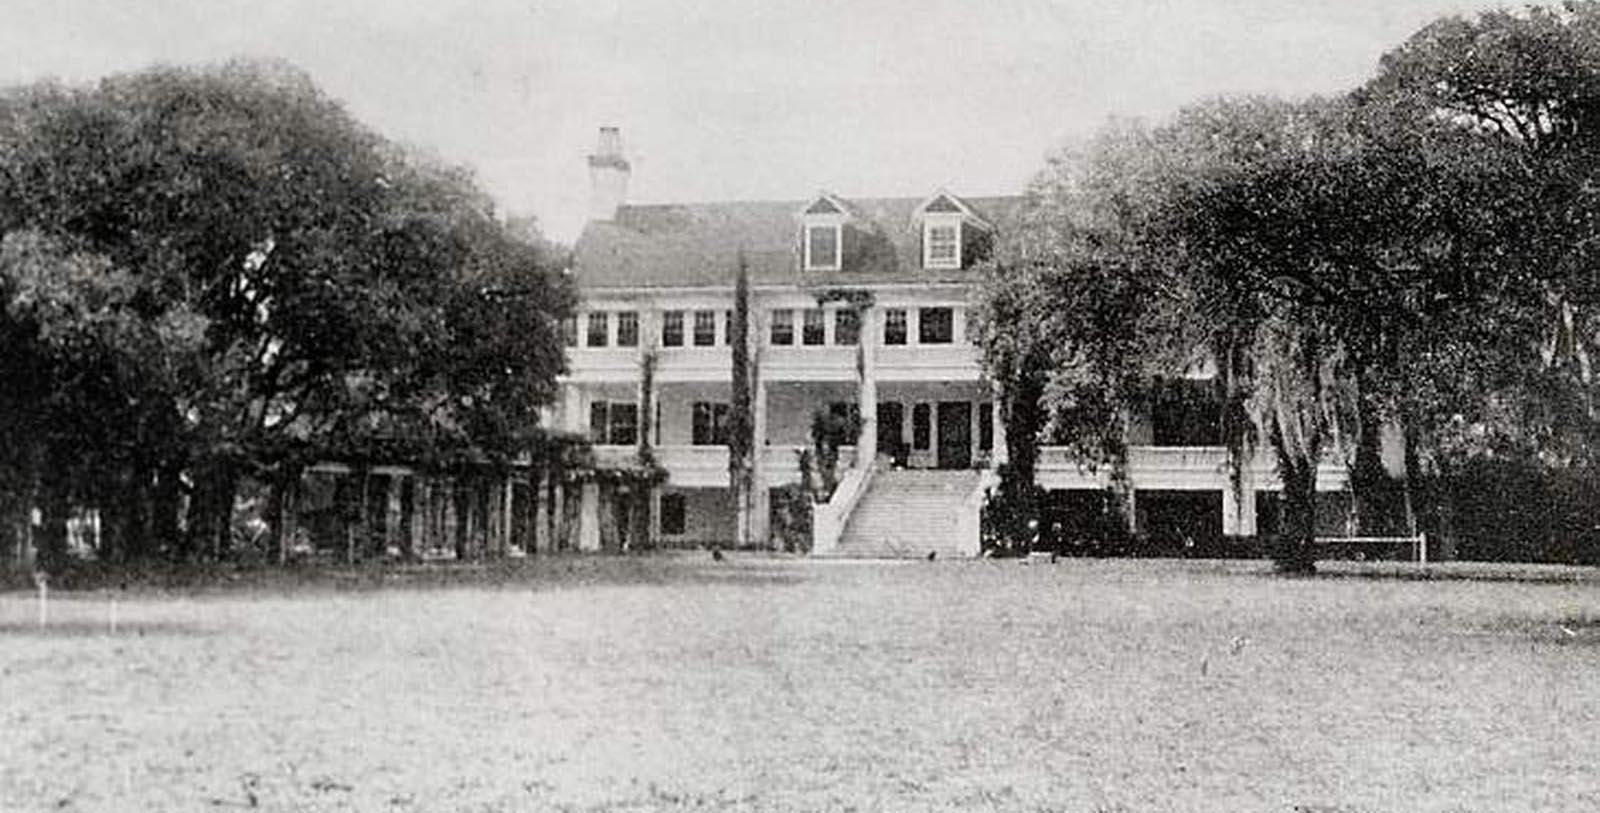 historic image of hotel exterior Greyfield Inn, 1900, Member of Historic Hotels of America, in Cumberland Island, Georgia, Discover